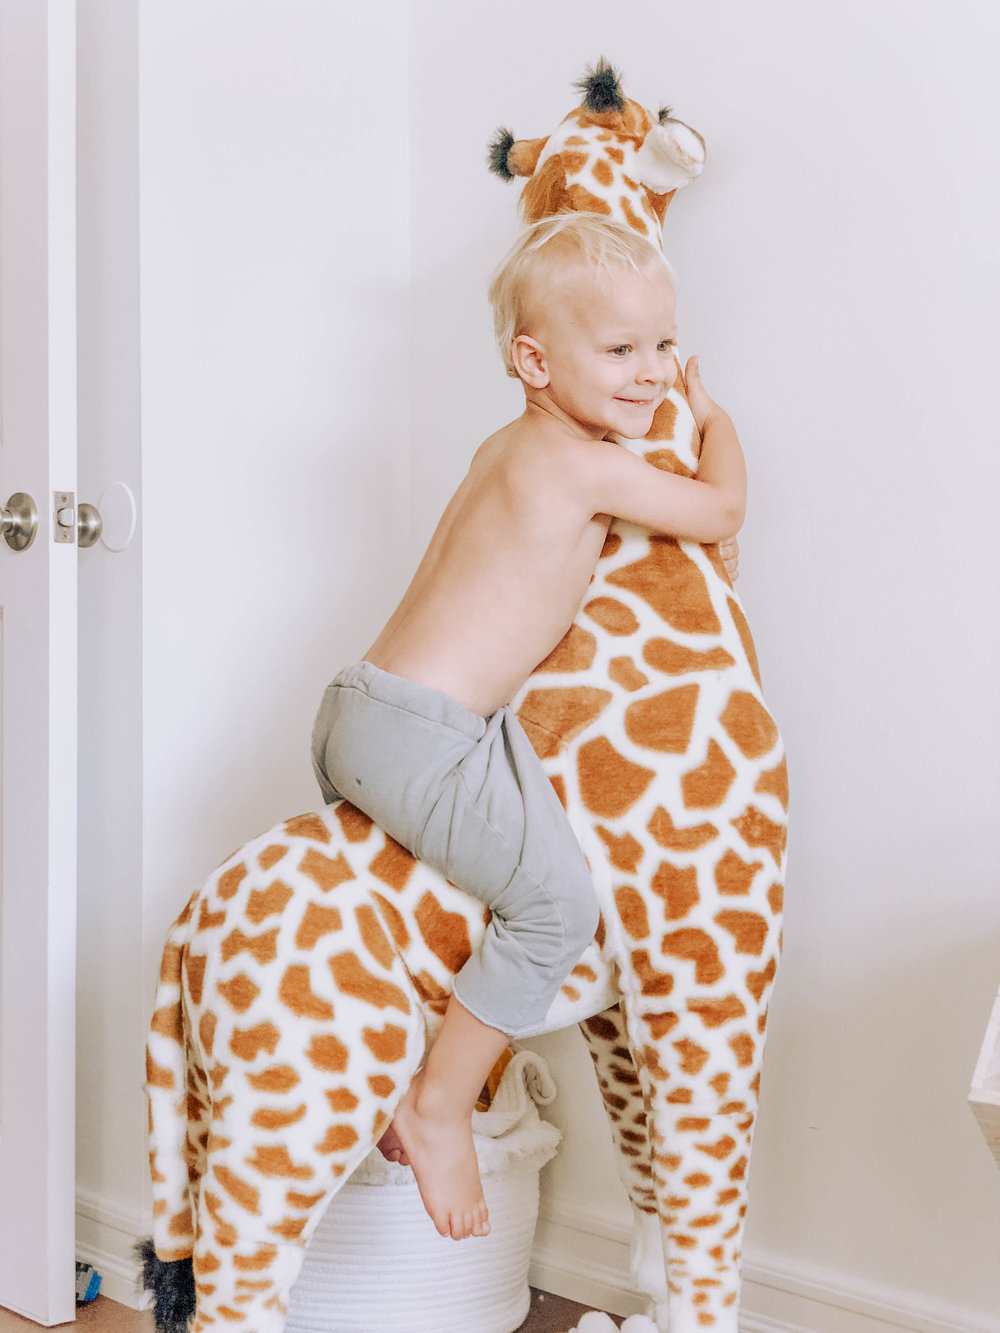 kids toy giraffe.jpg